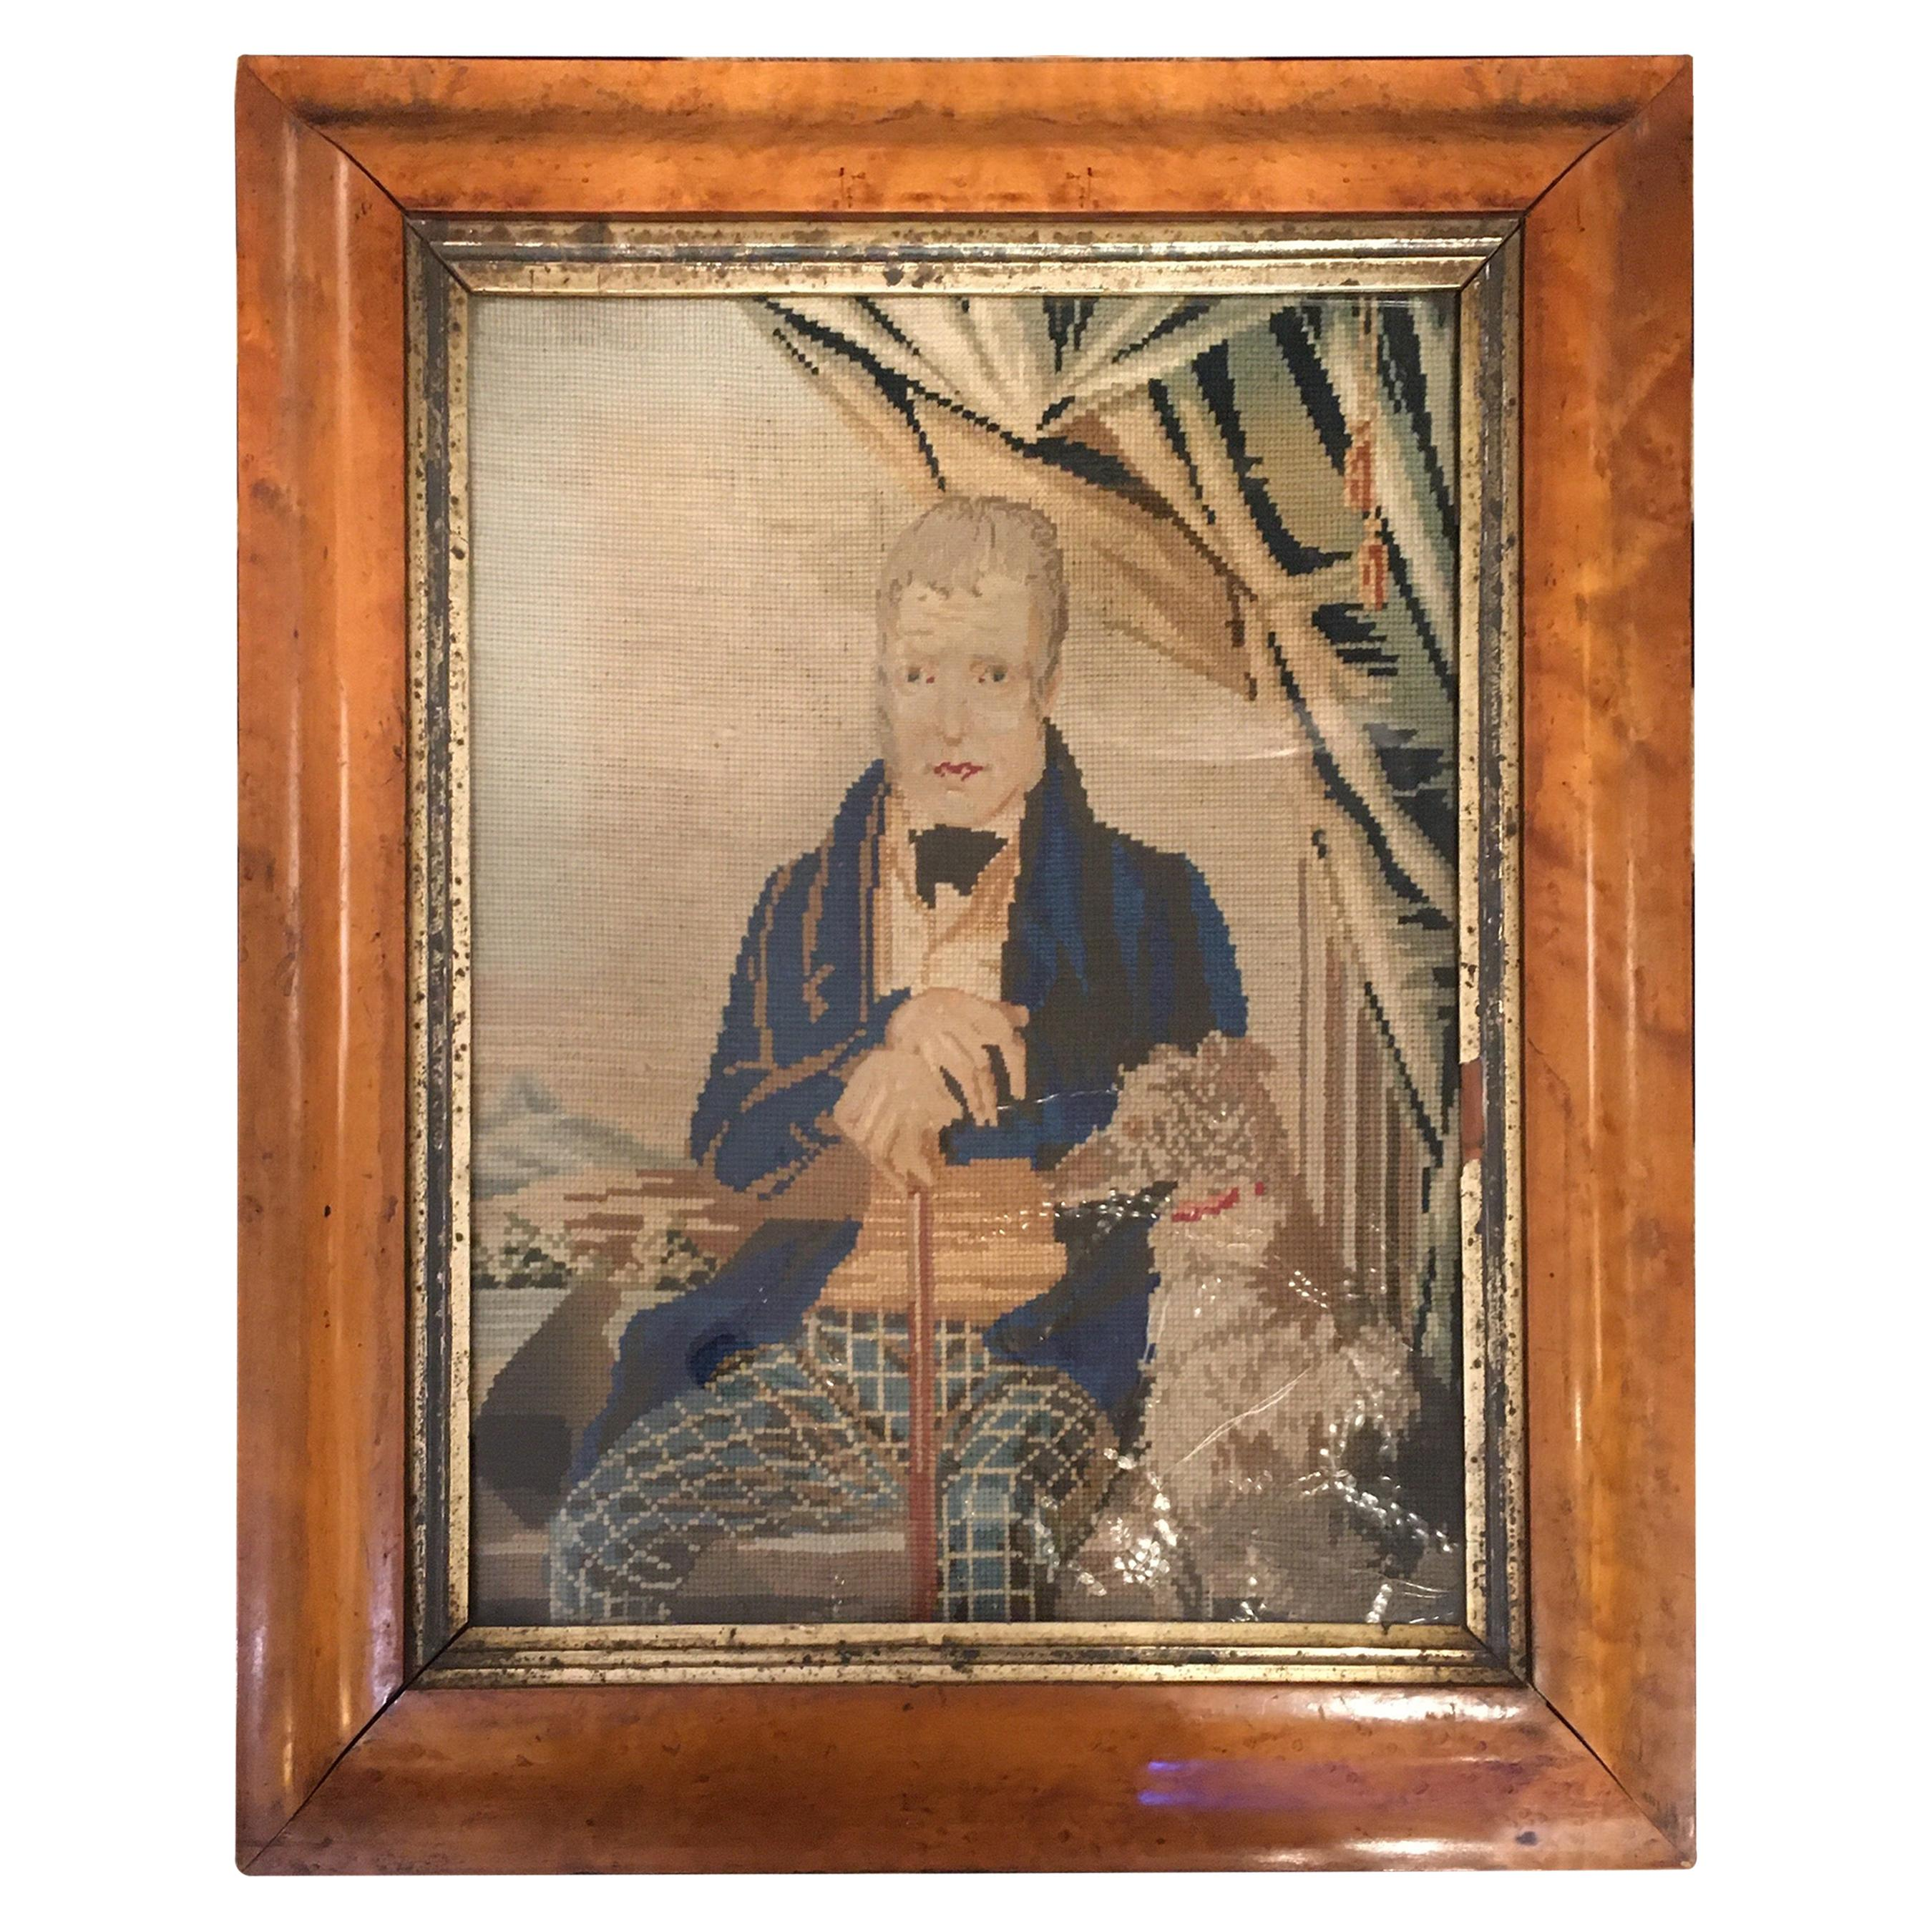 Late 18th Century Needlepoint Portrait of Gentleman and Dog